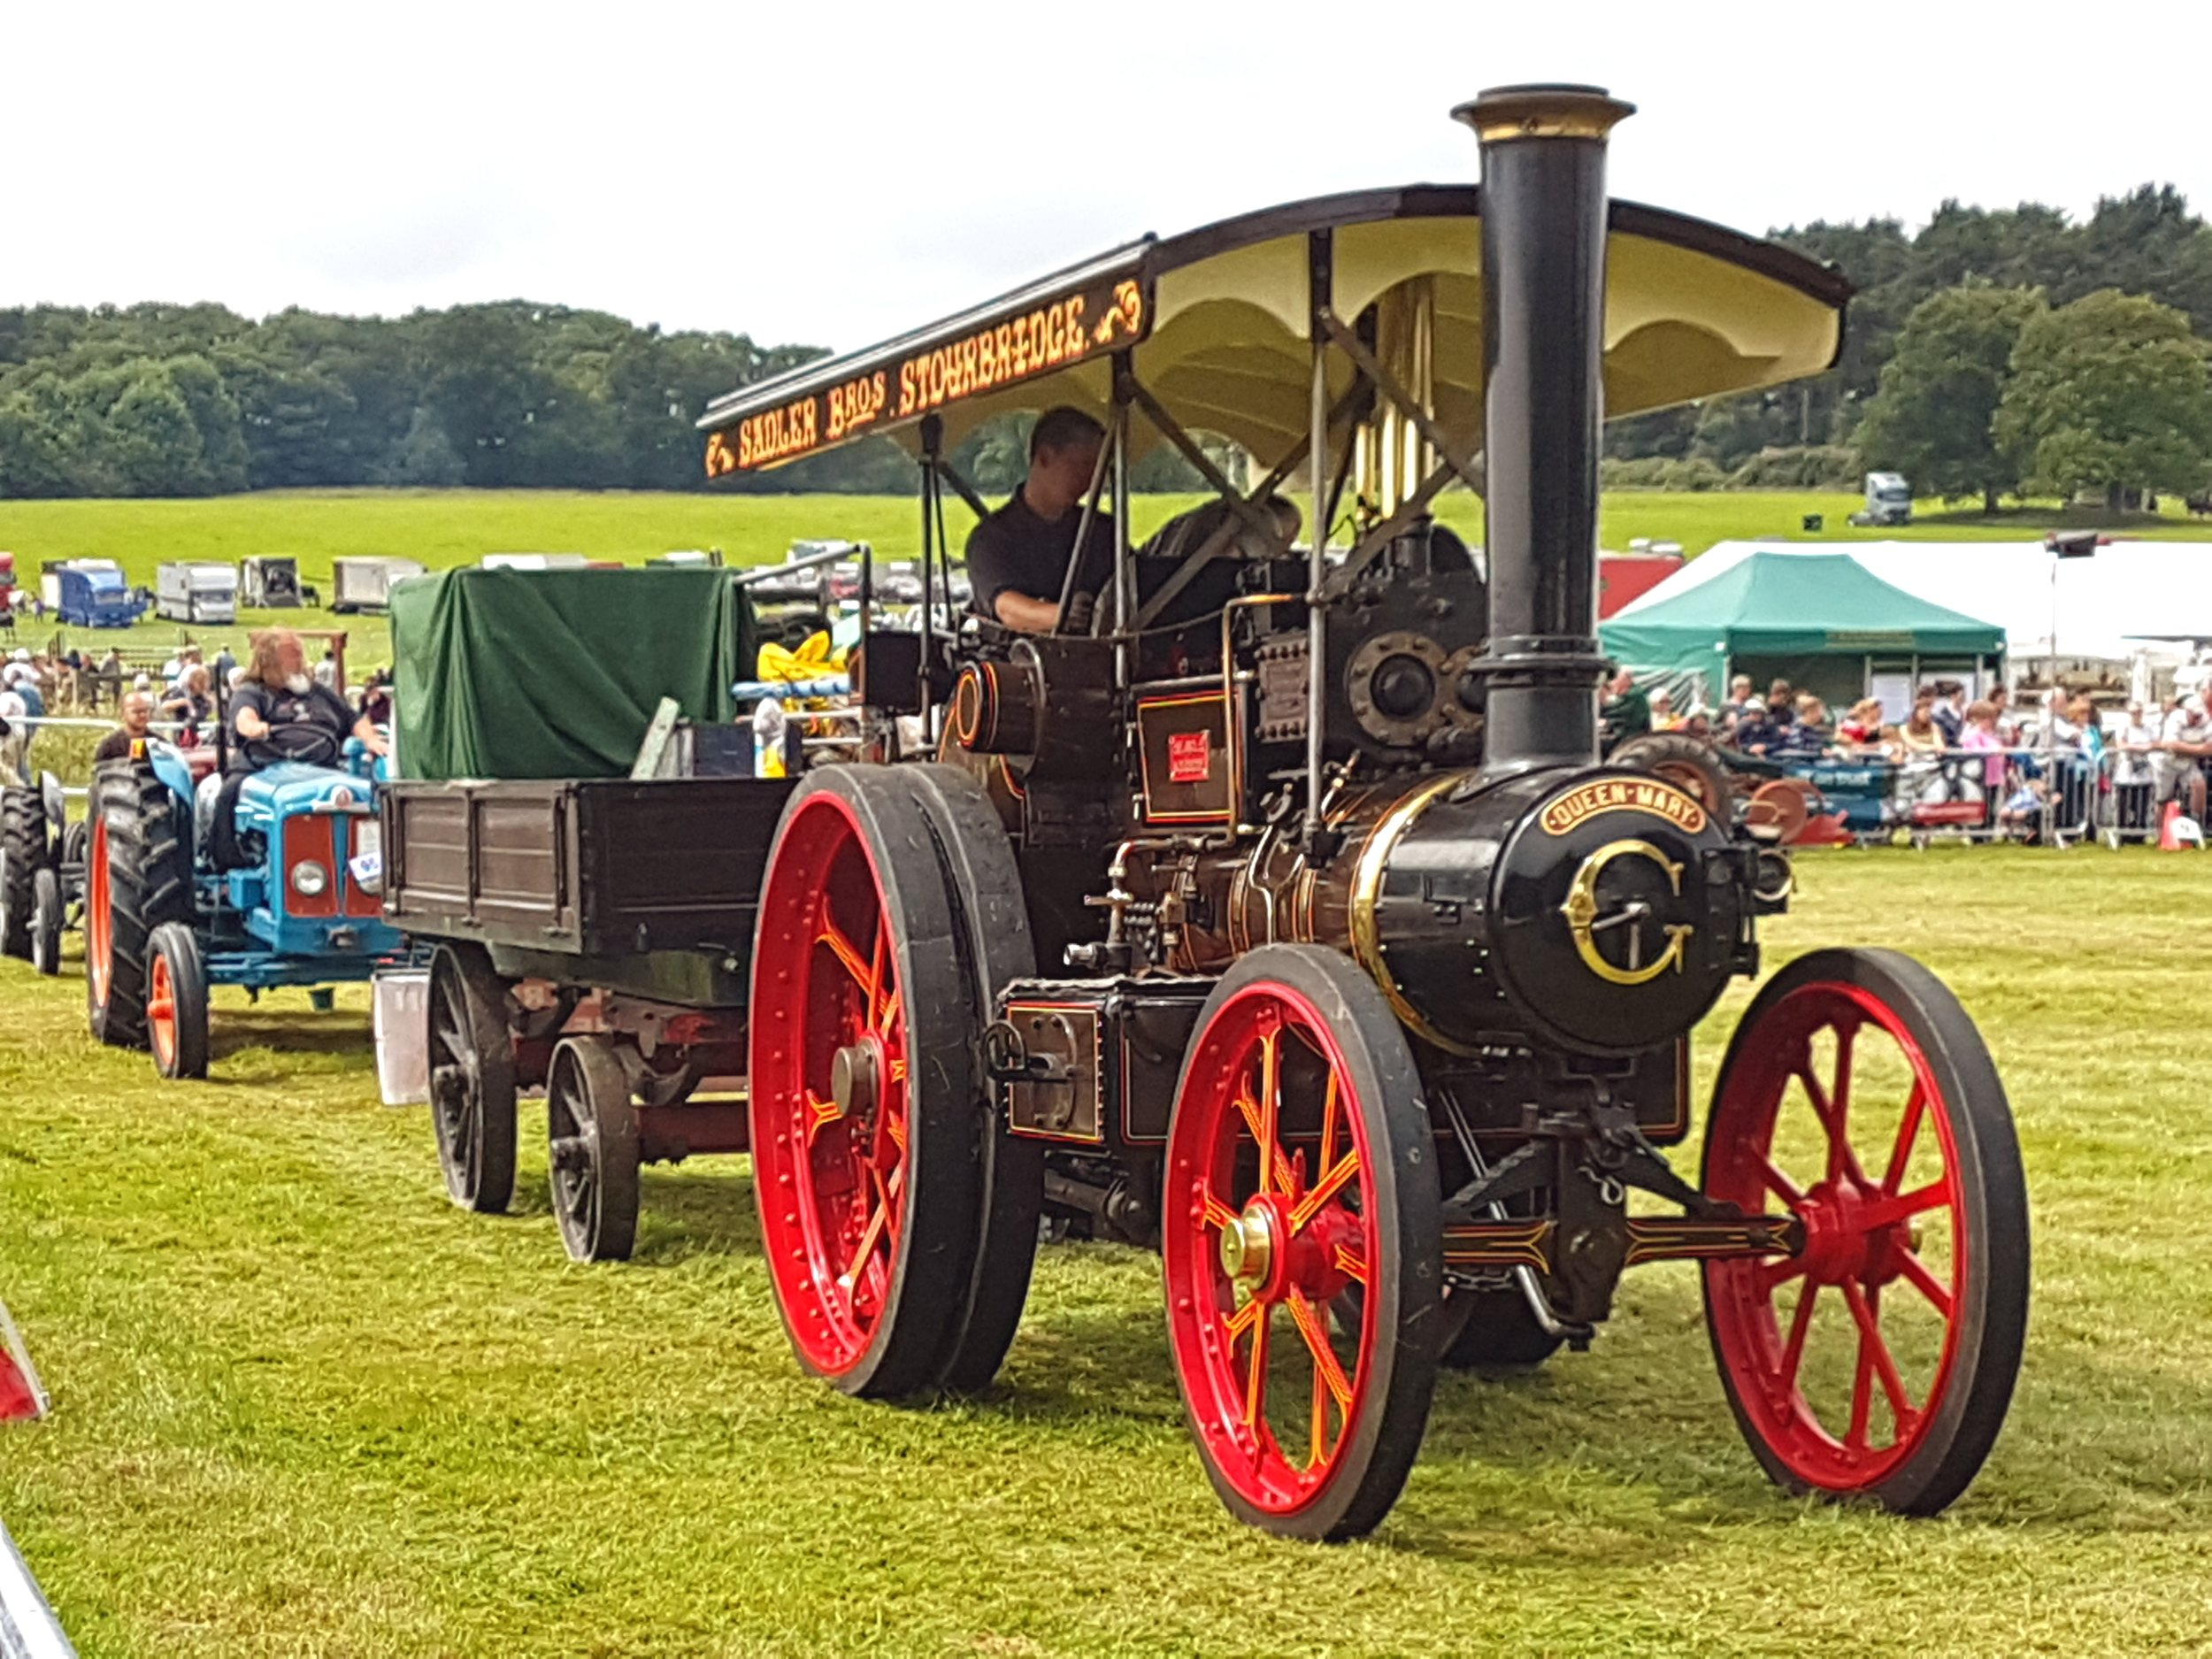 The Derbyshire County Show and Food Fayre is returning to Elvaston Castle on Saturday,  June 23 2019